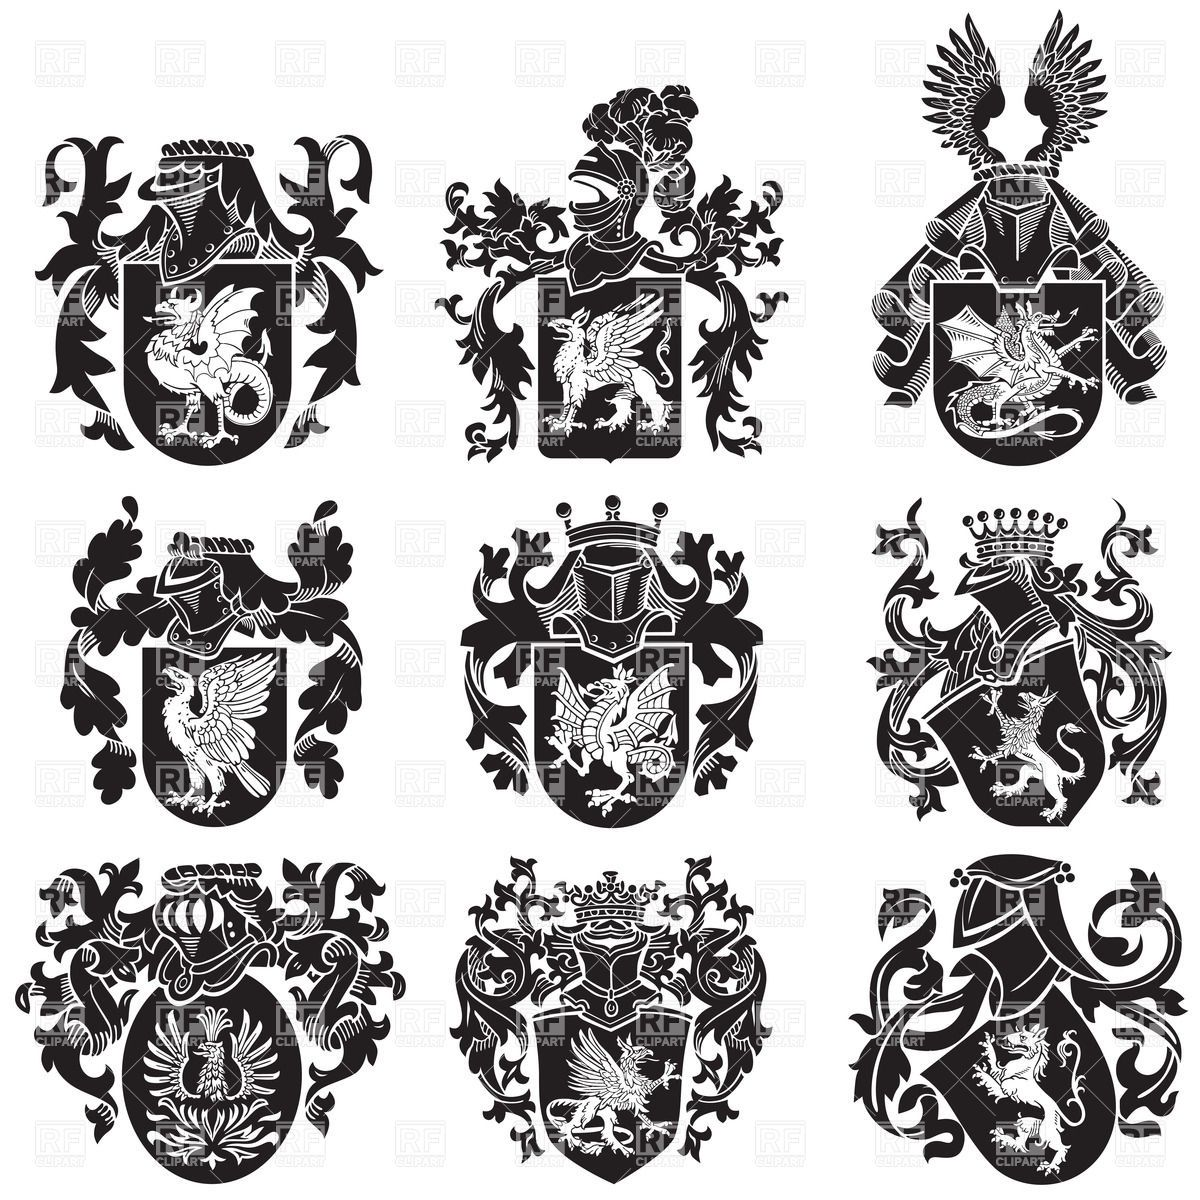 Pics for medieval heraldry symbols family crest symbols etc pics for medieval heraldry symbols biocorpaavc Choice Image